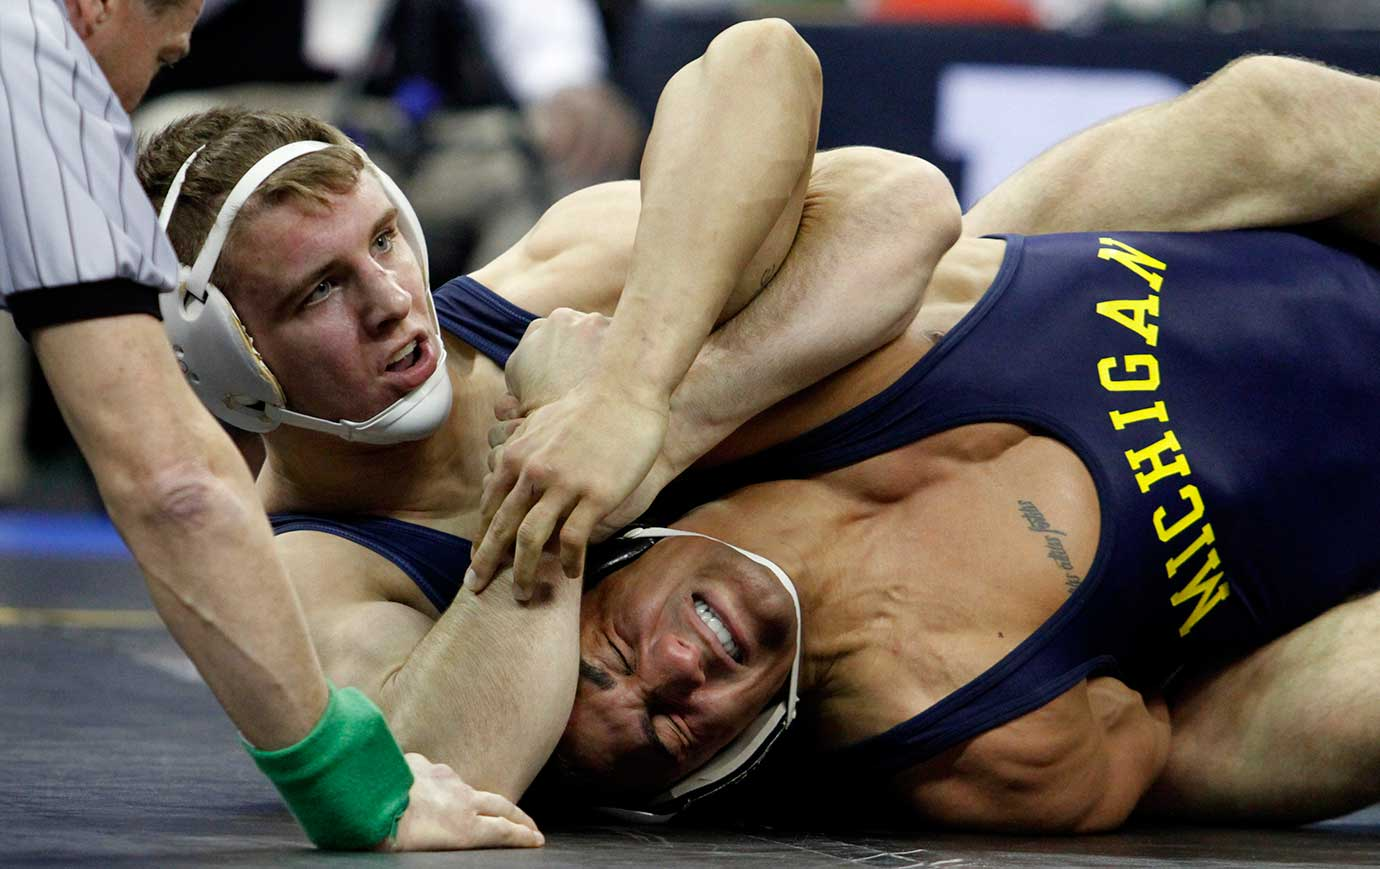 Penn State's Zain Retherford works to pin Michigan's Alec Panataleo in at the Big Ten wrestling championships.